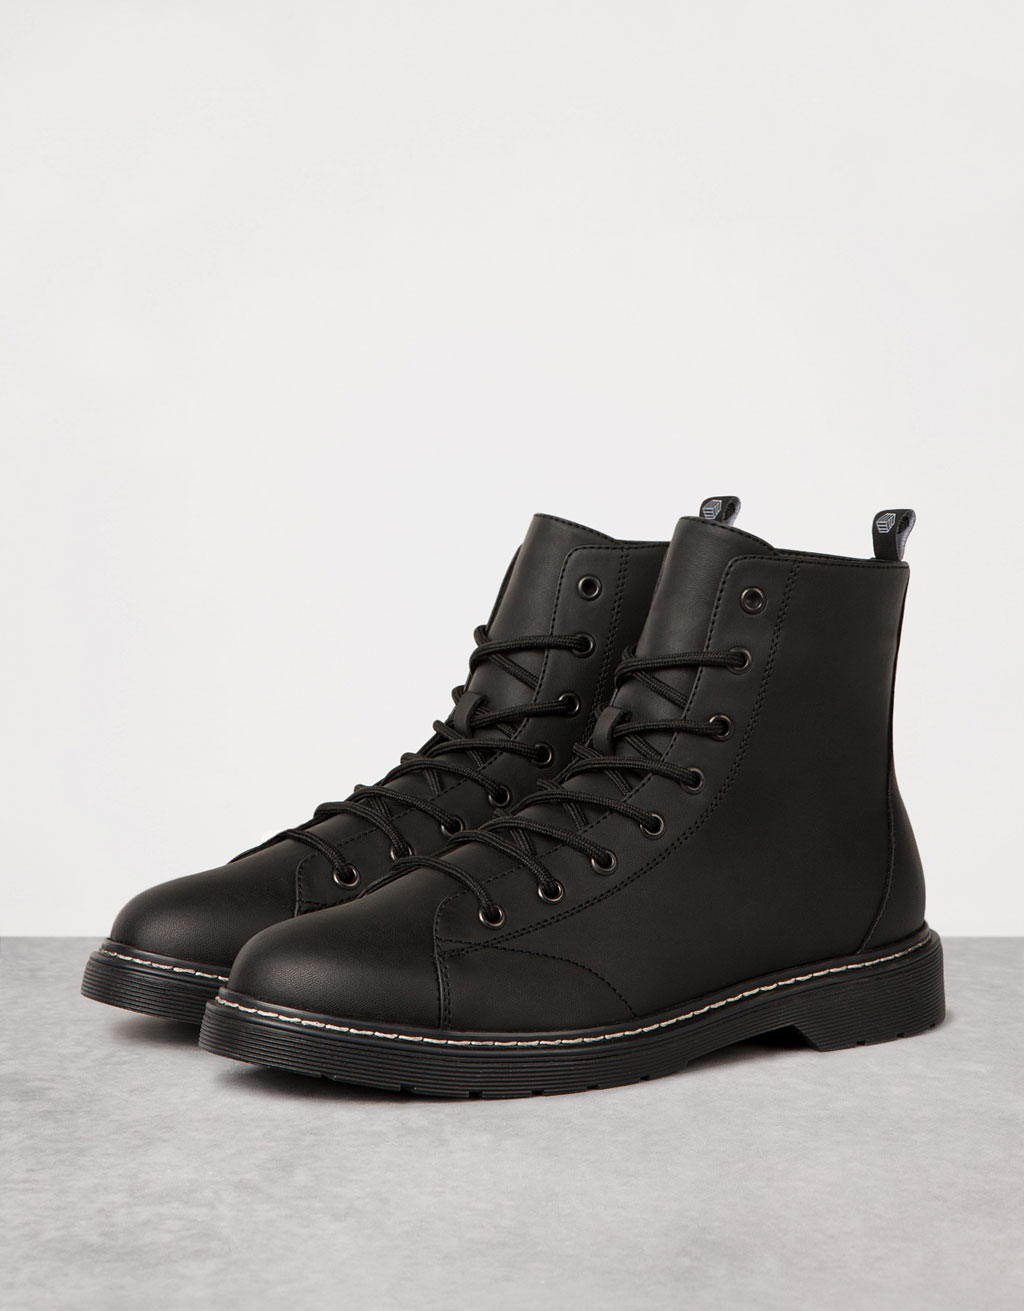 Men's lace-up contrast boots